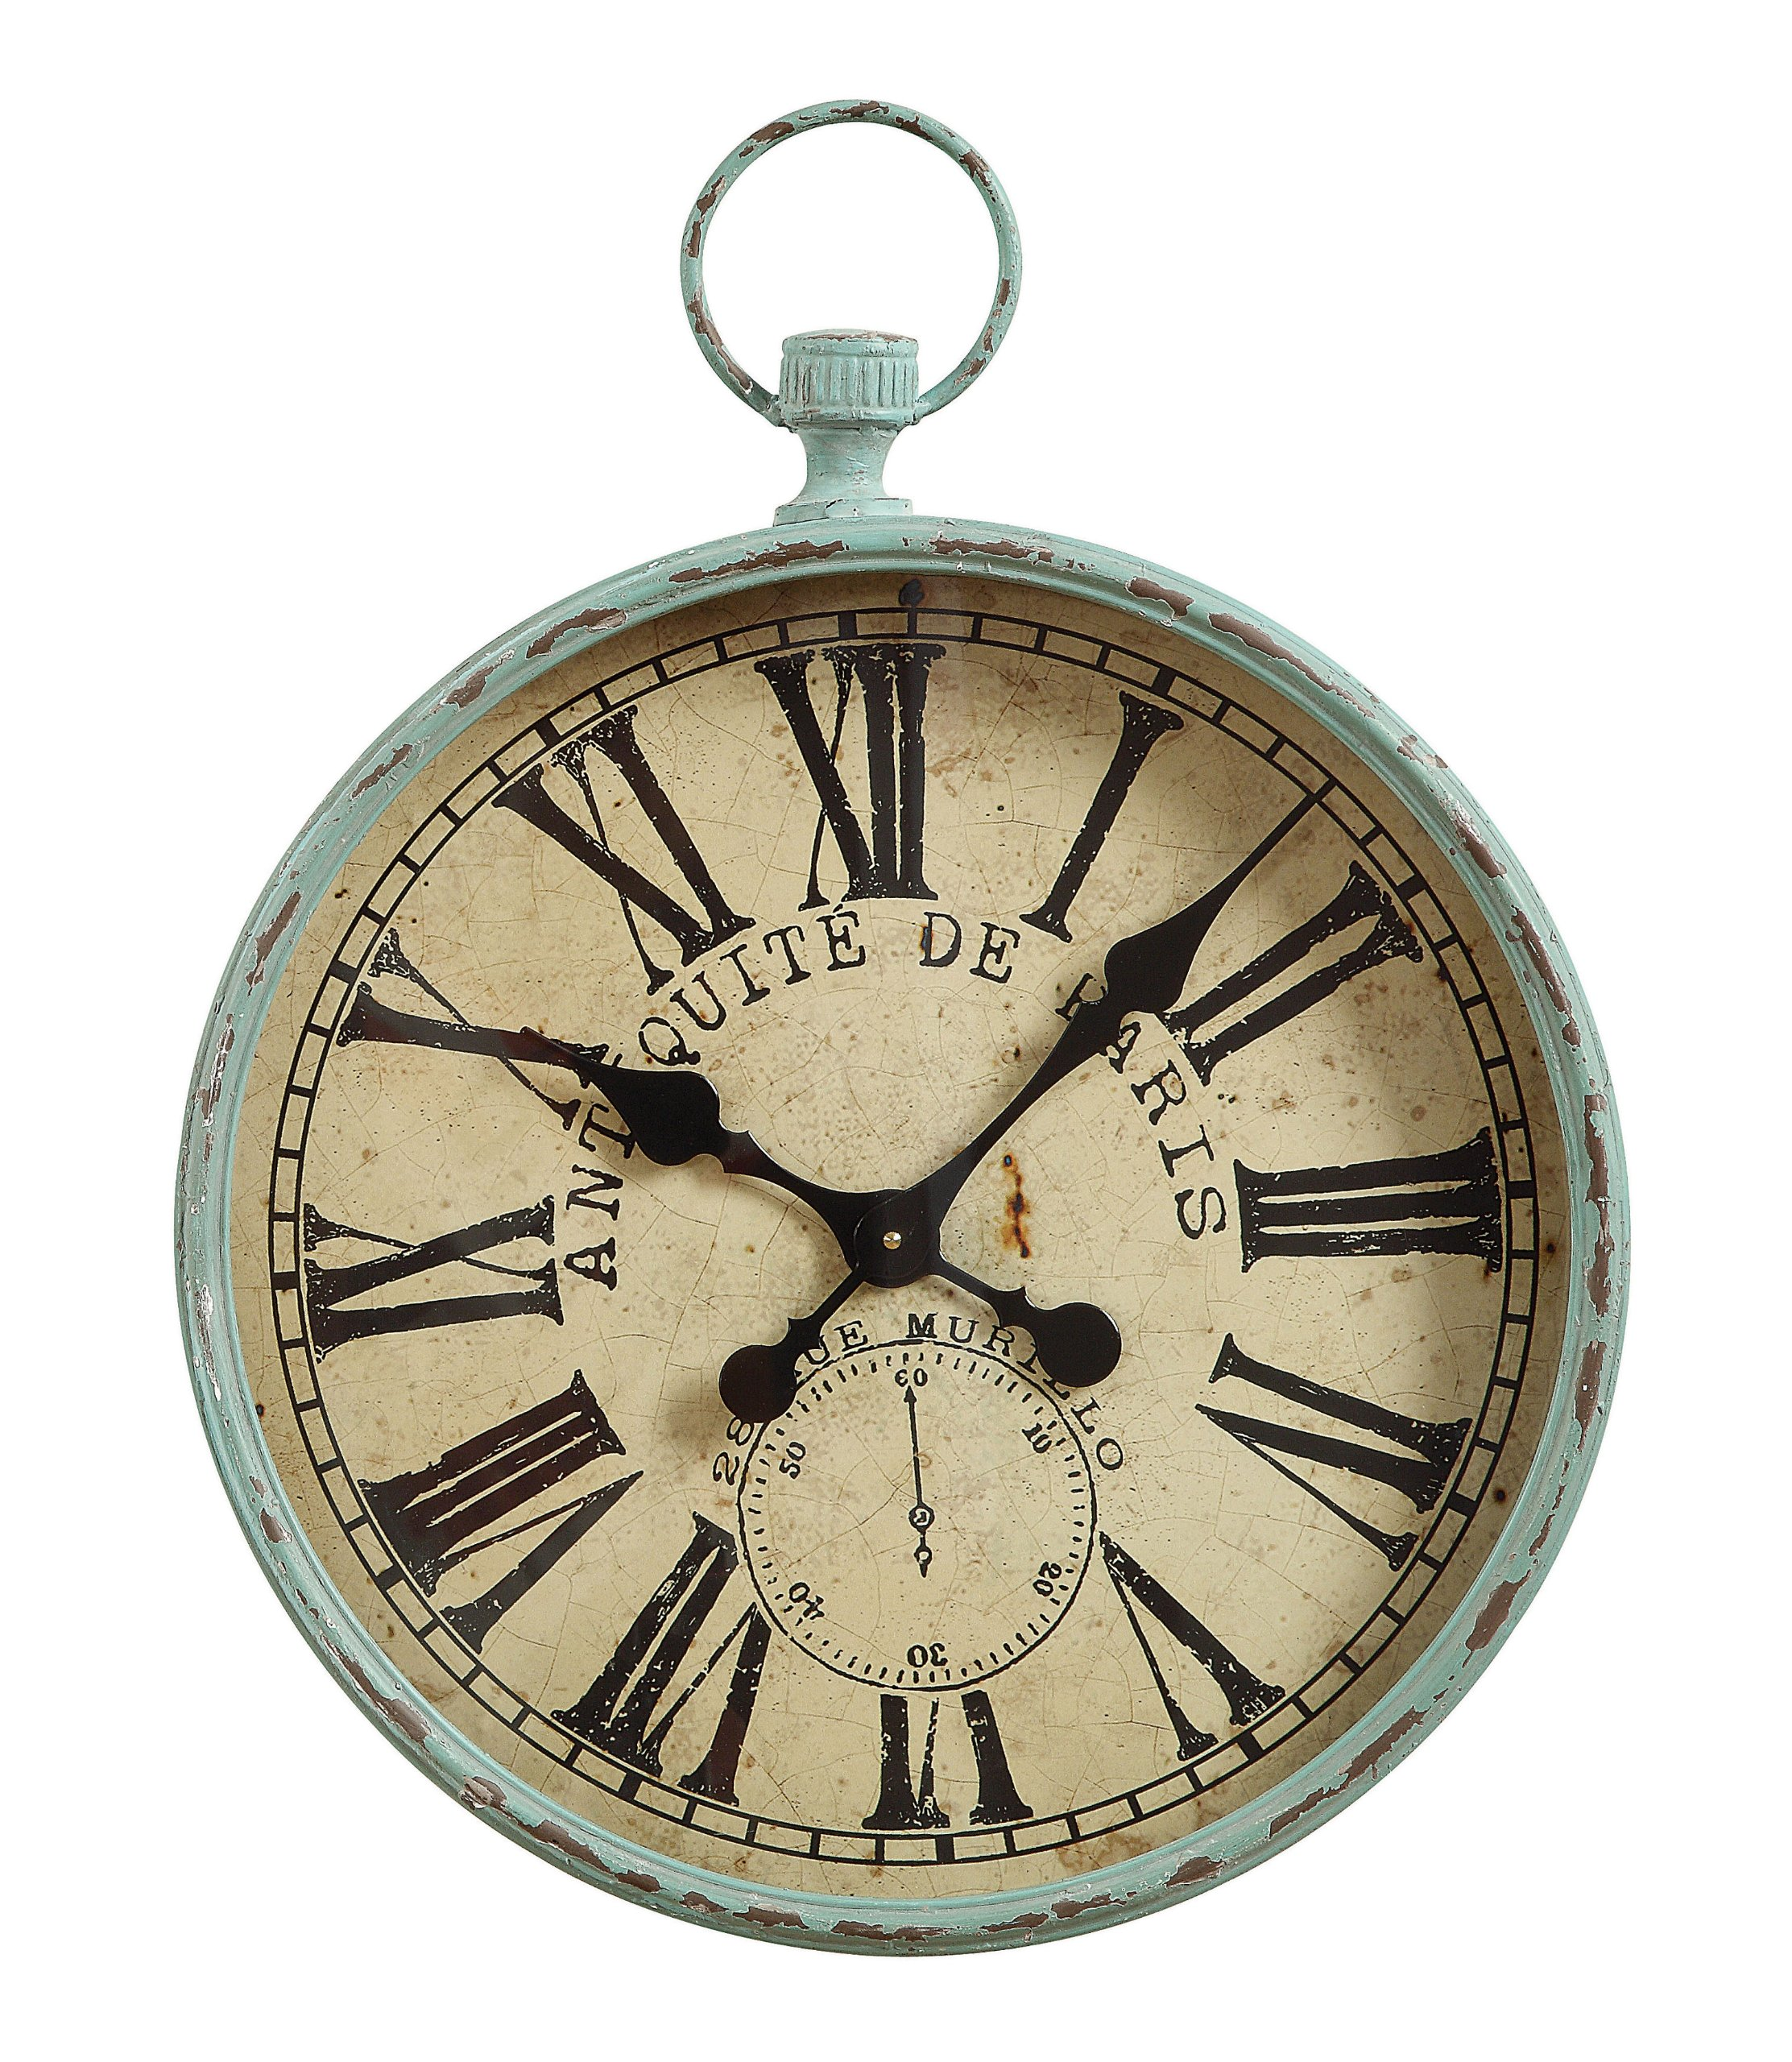 Creative Co-op DA1534 Metal Antiquite De Paris Pocket Watch Wall Clock - From the Farmer's Daughter collection Requires 2 AA Batteries, not included 19.1 x 3.1 x 24.6 inches - wall-clocks, living-room-decor, living-room - 91ofJSFJw4L -